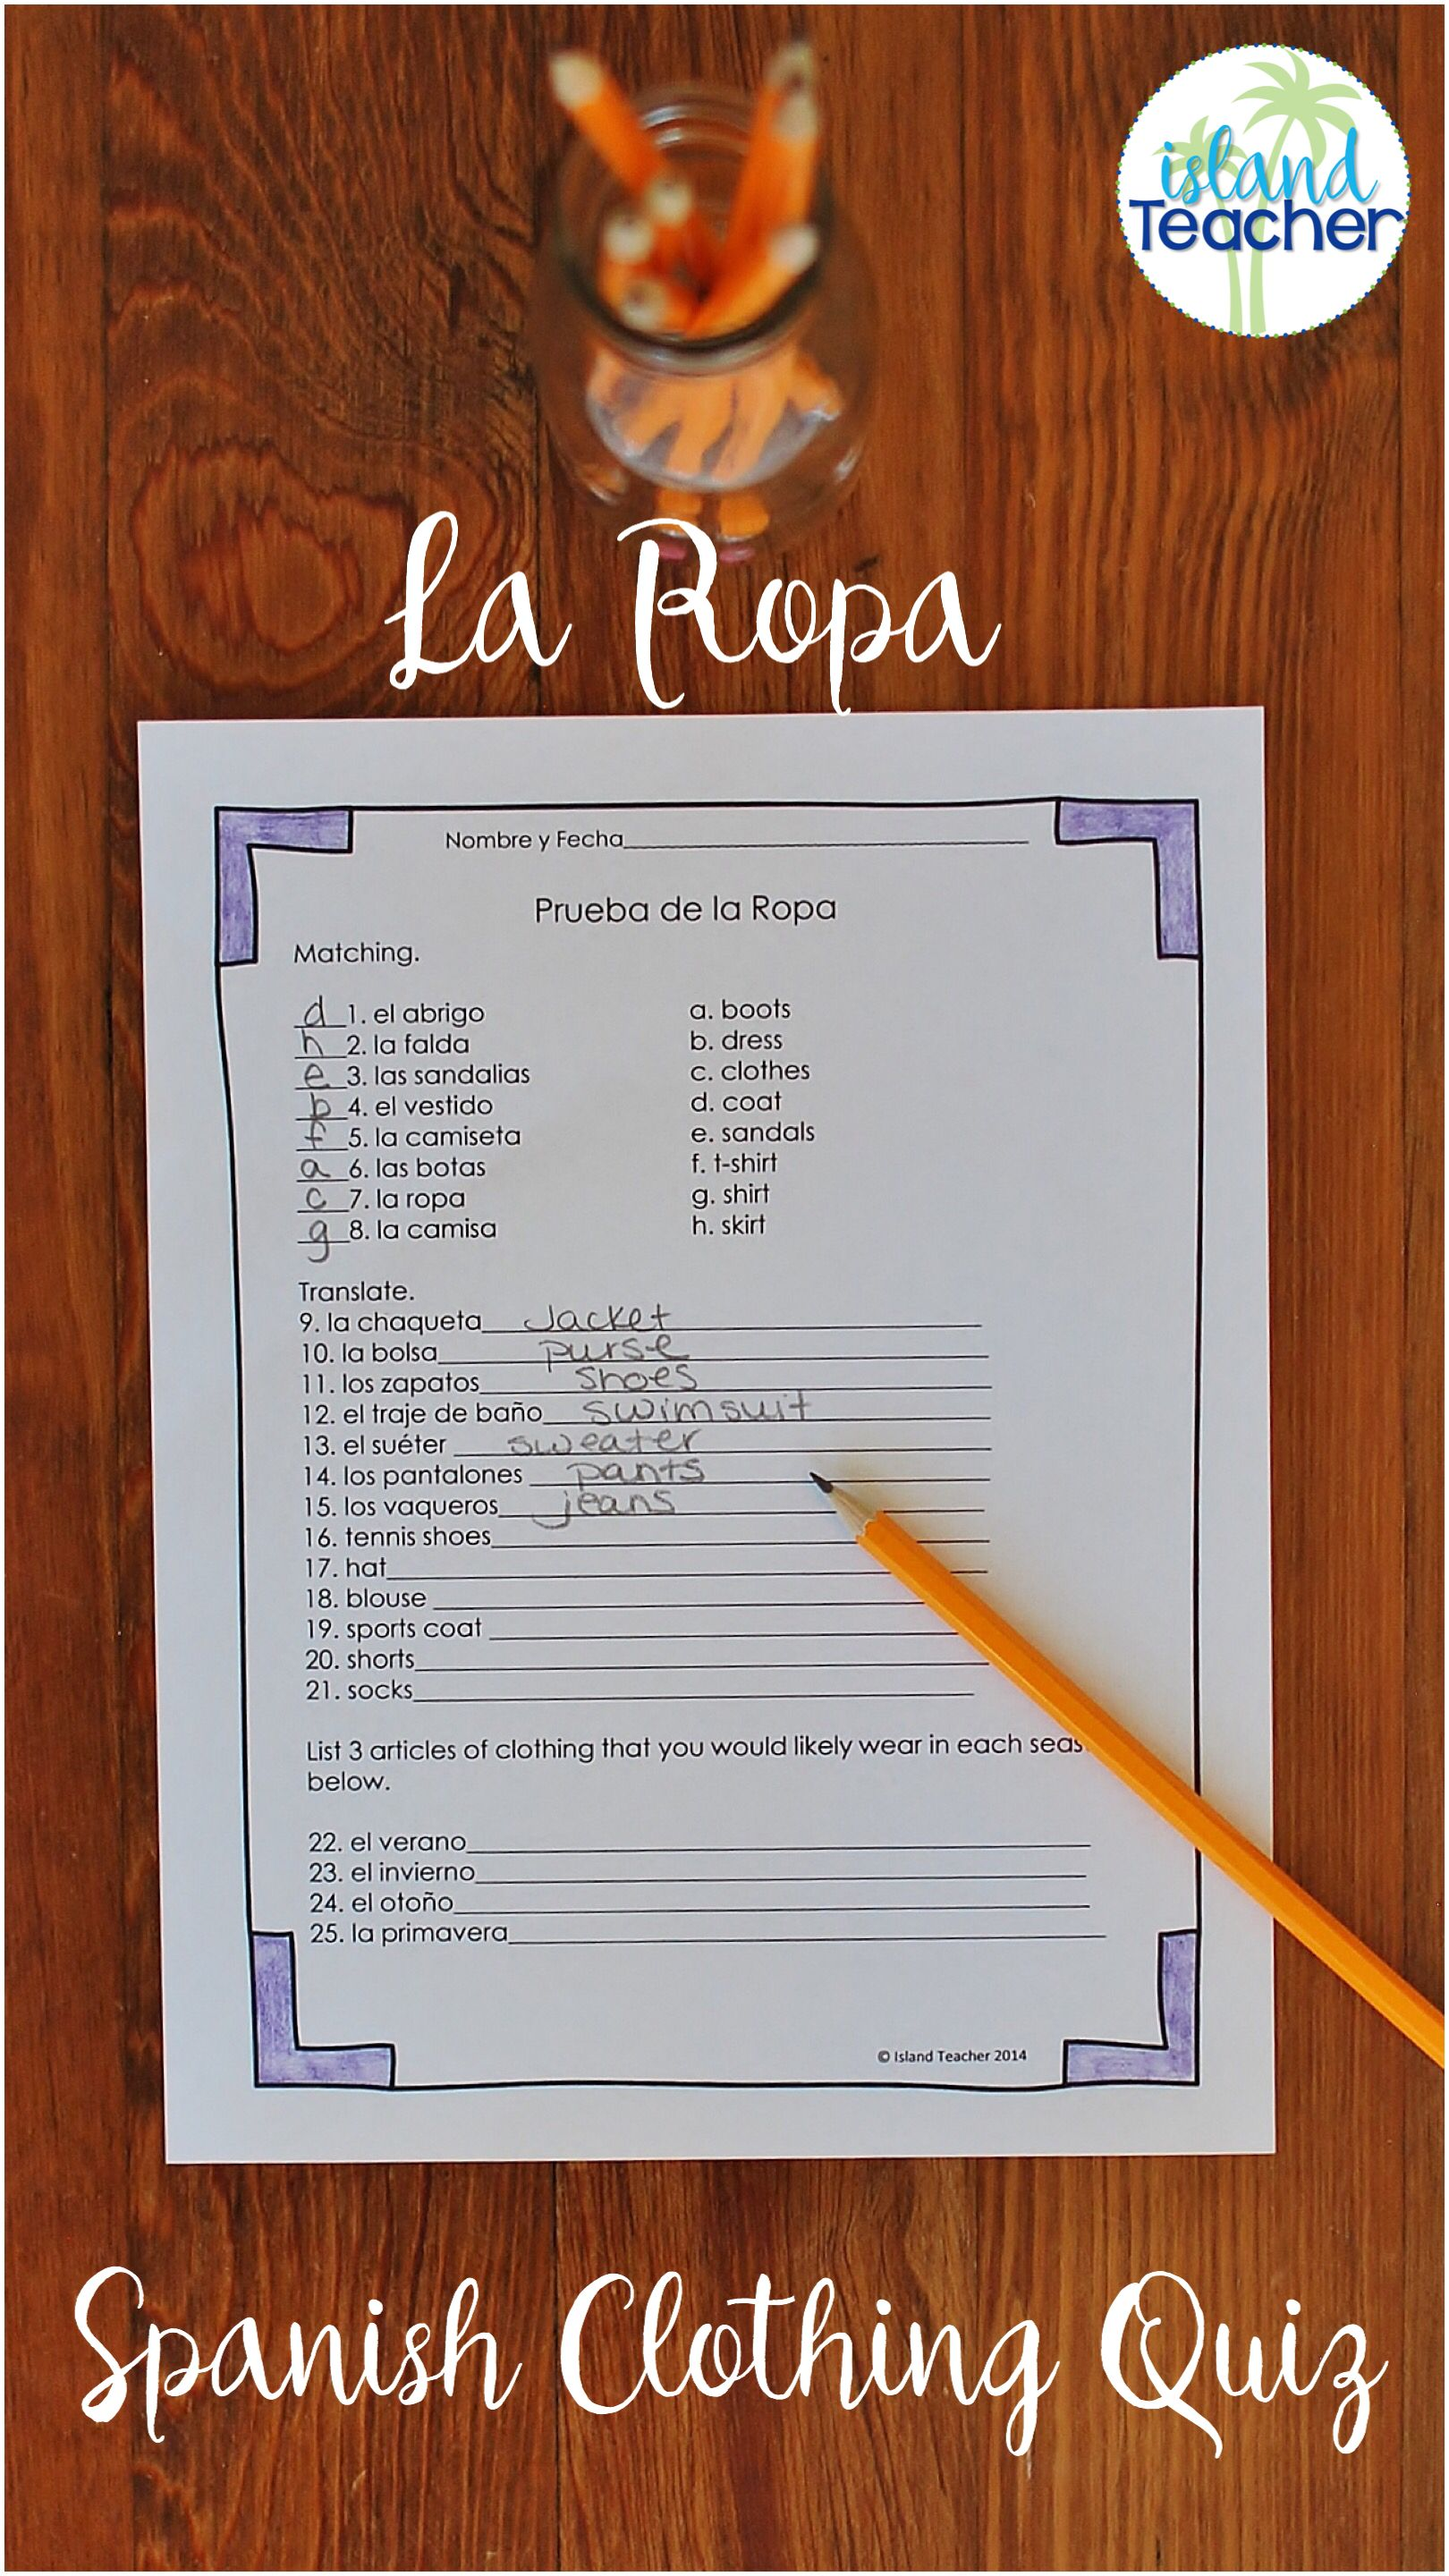 La Ropa Spanish Clothing Quiz